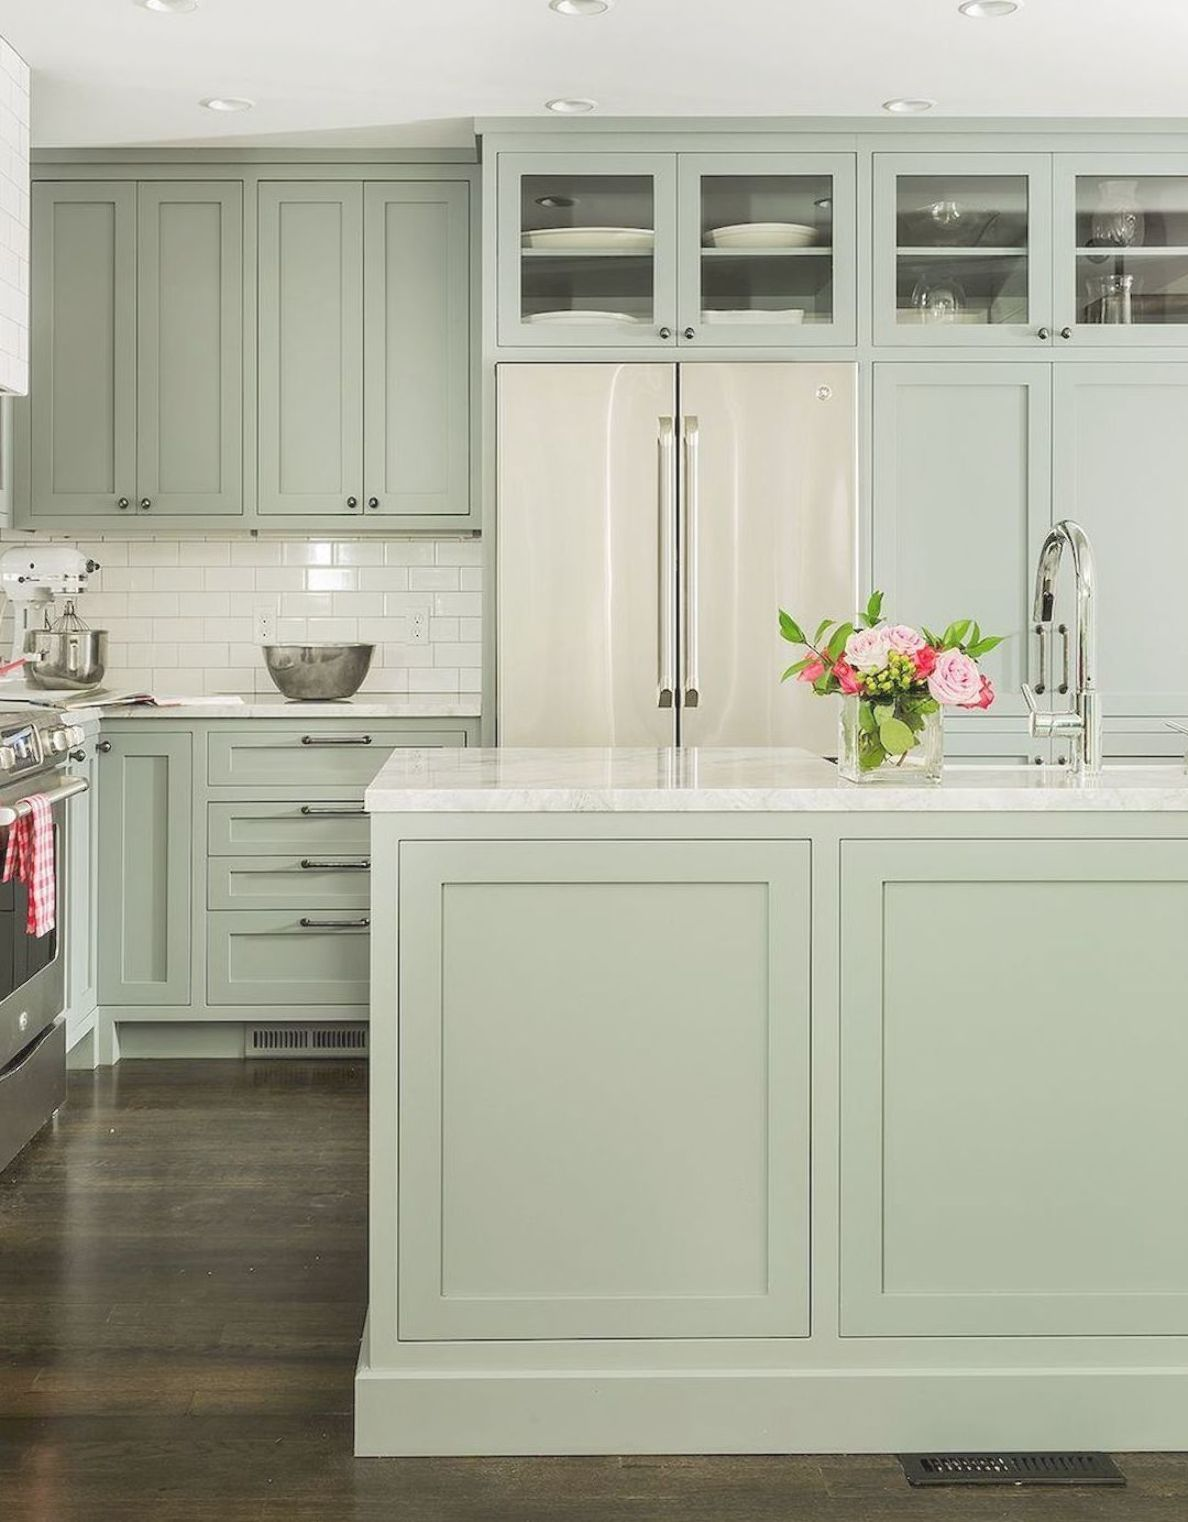 Awesome Sage Greens Kitchen Cabinets 13 In 2020 Sage Green Kitchen Green Kitchen Cabinets Kitchen Renovation